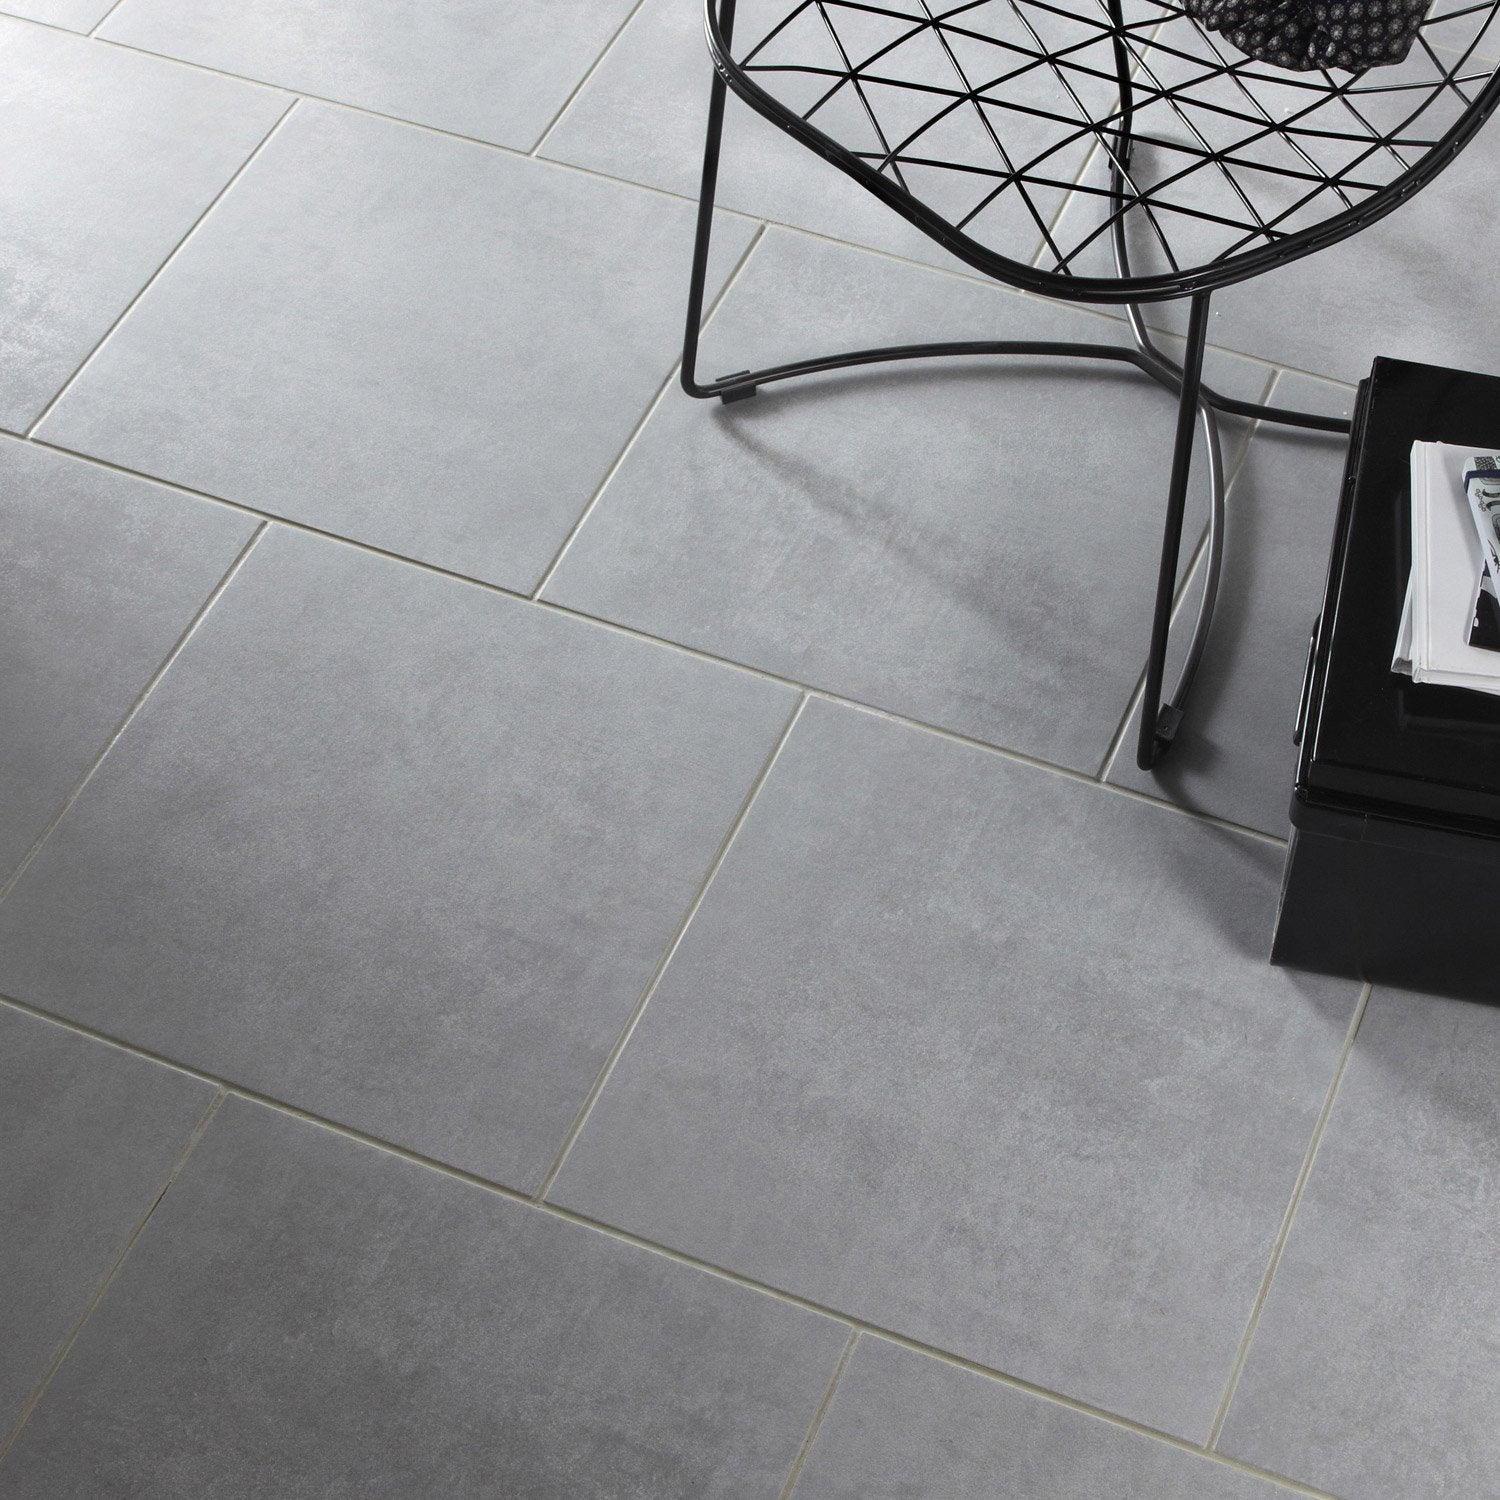 Carrelage pleine masse gris for Carrelage 80x80 blanc